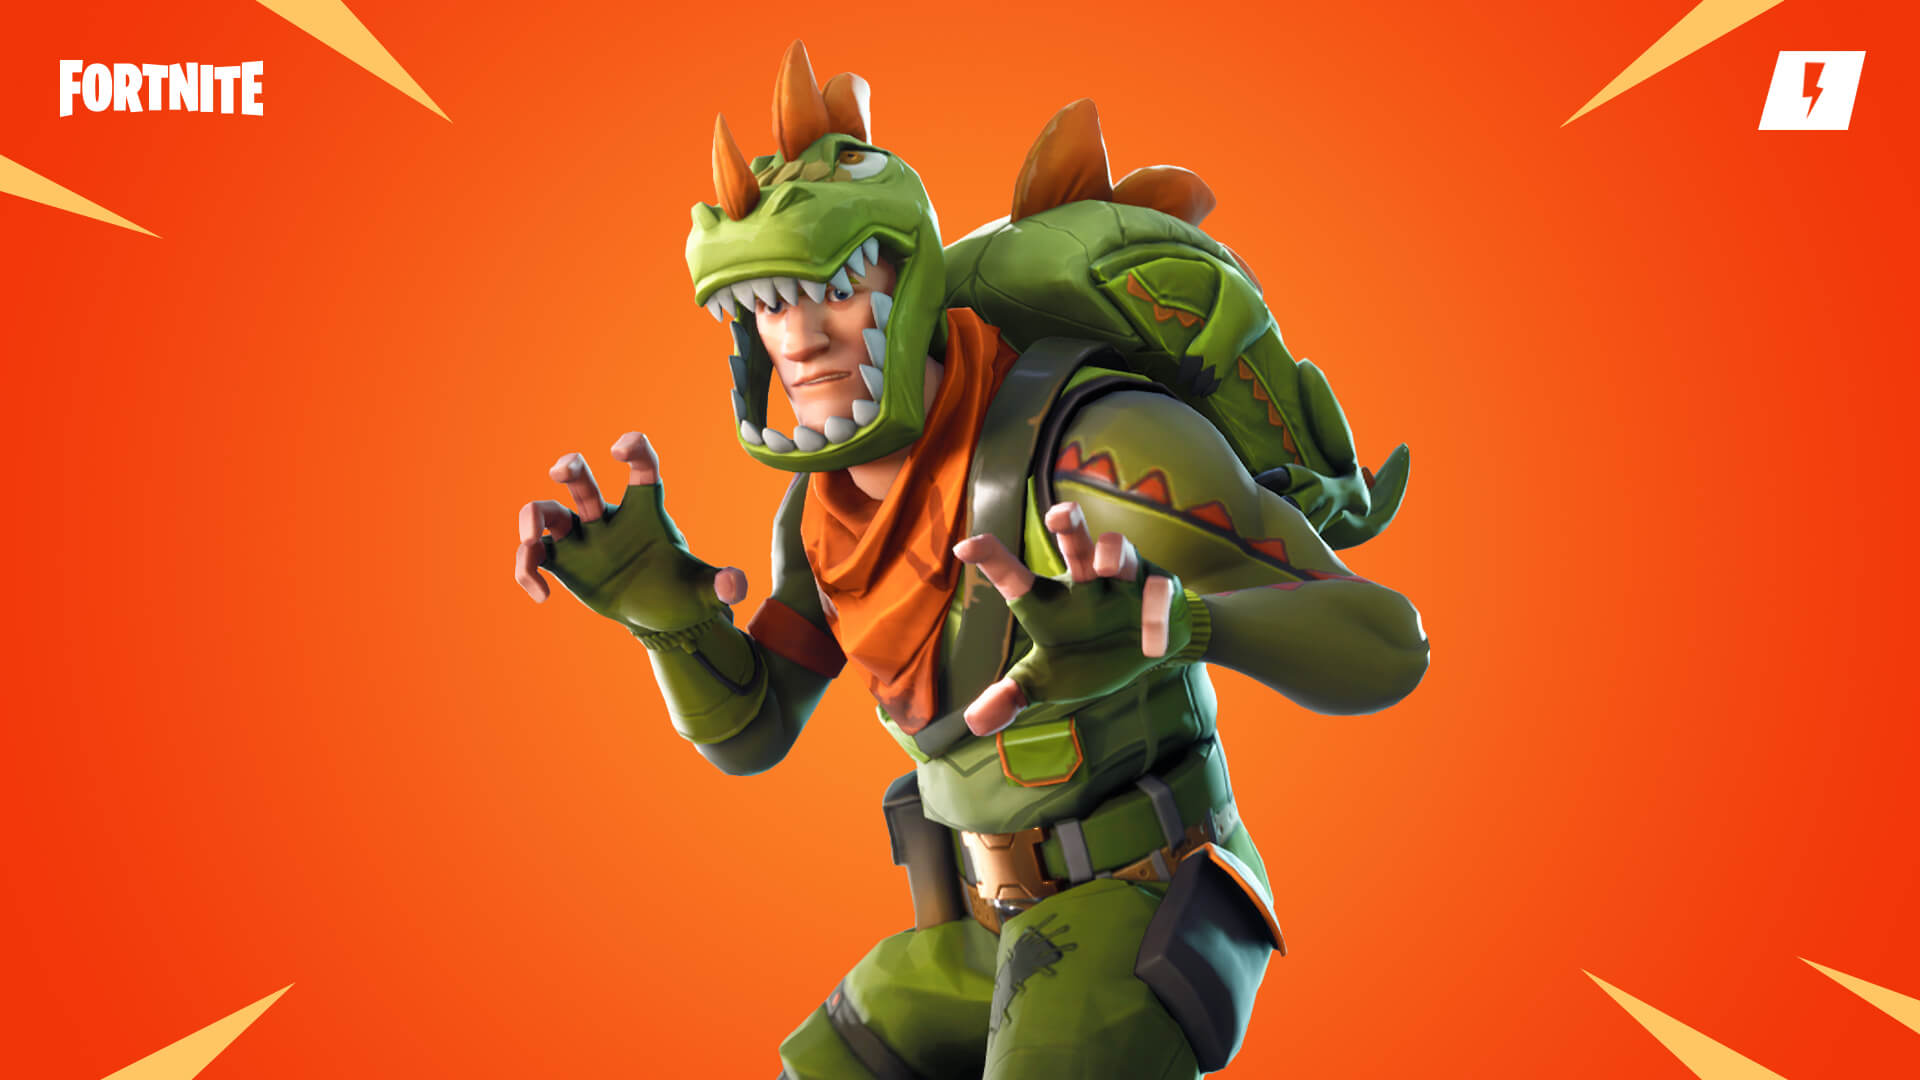 Fortnite Rex Jonesy